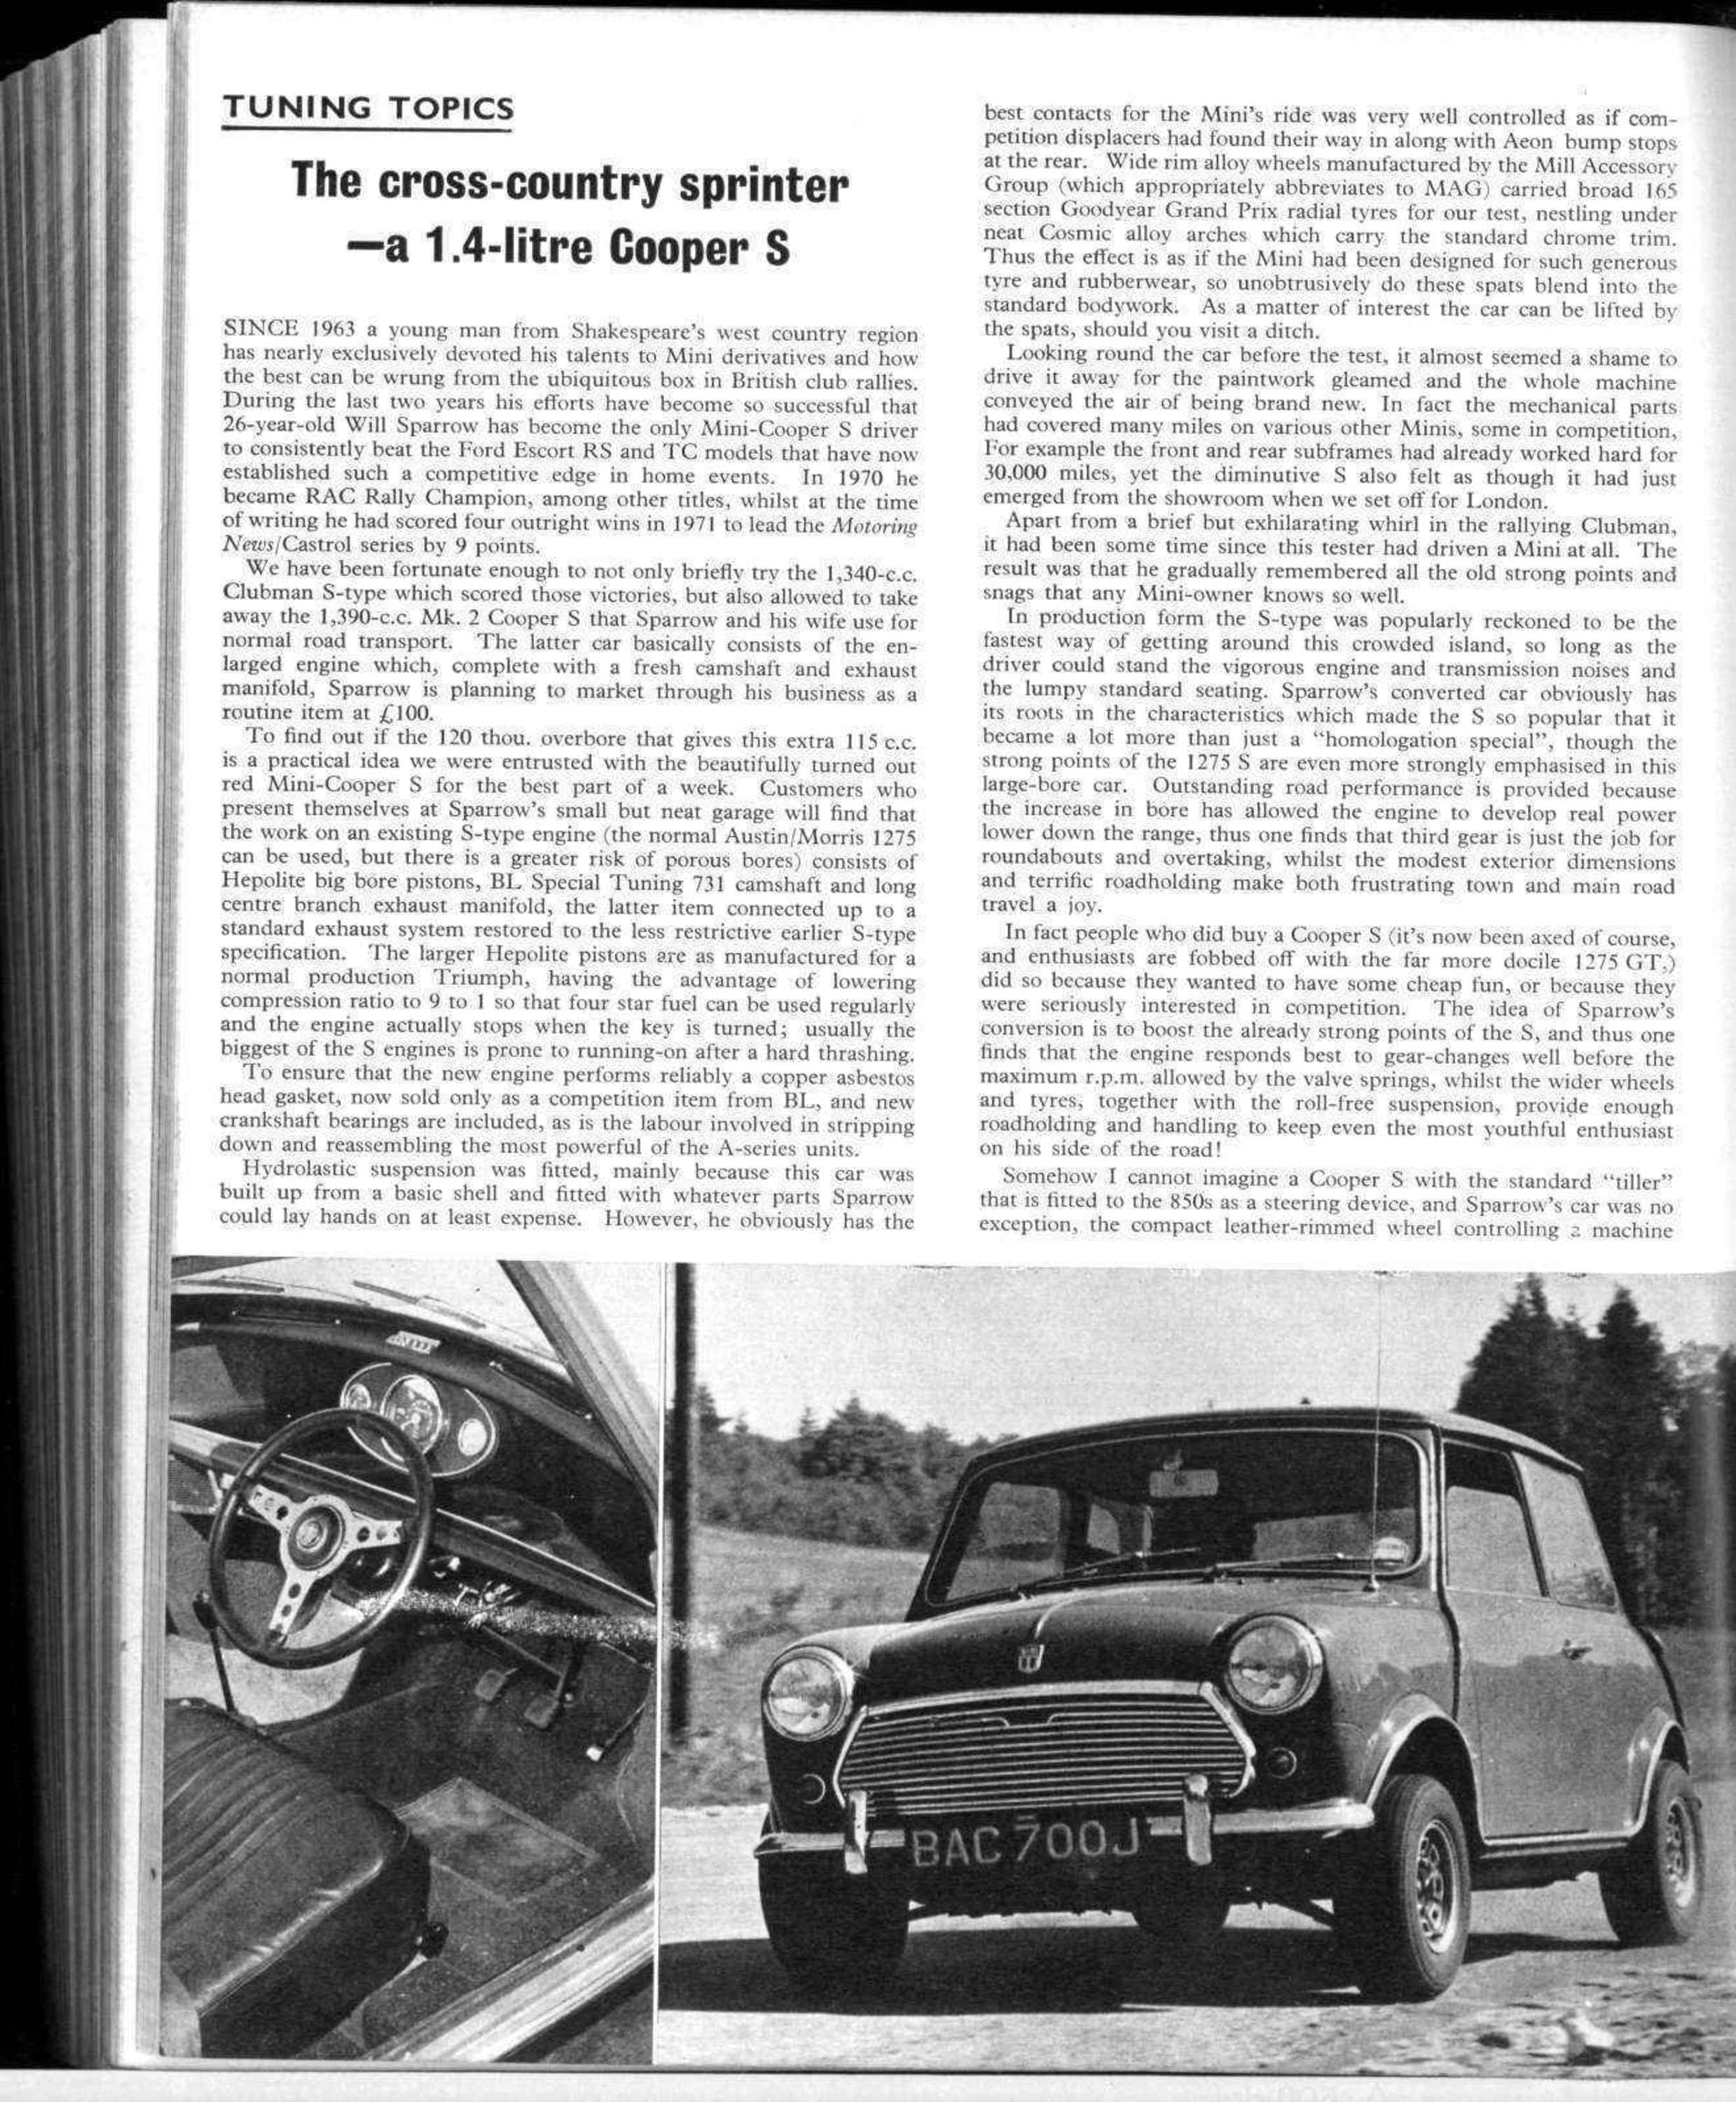 Tuning topics: the cross-country sprinter—a 1 4-litre Cooper S